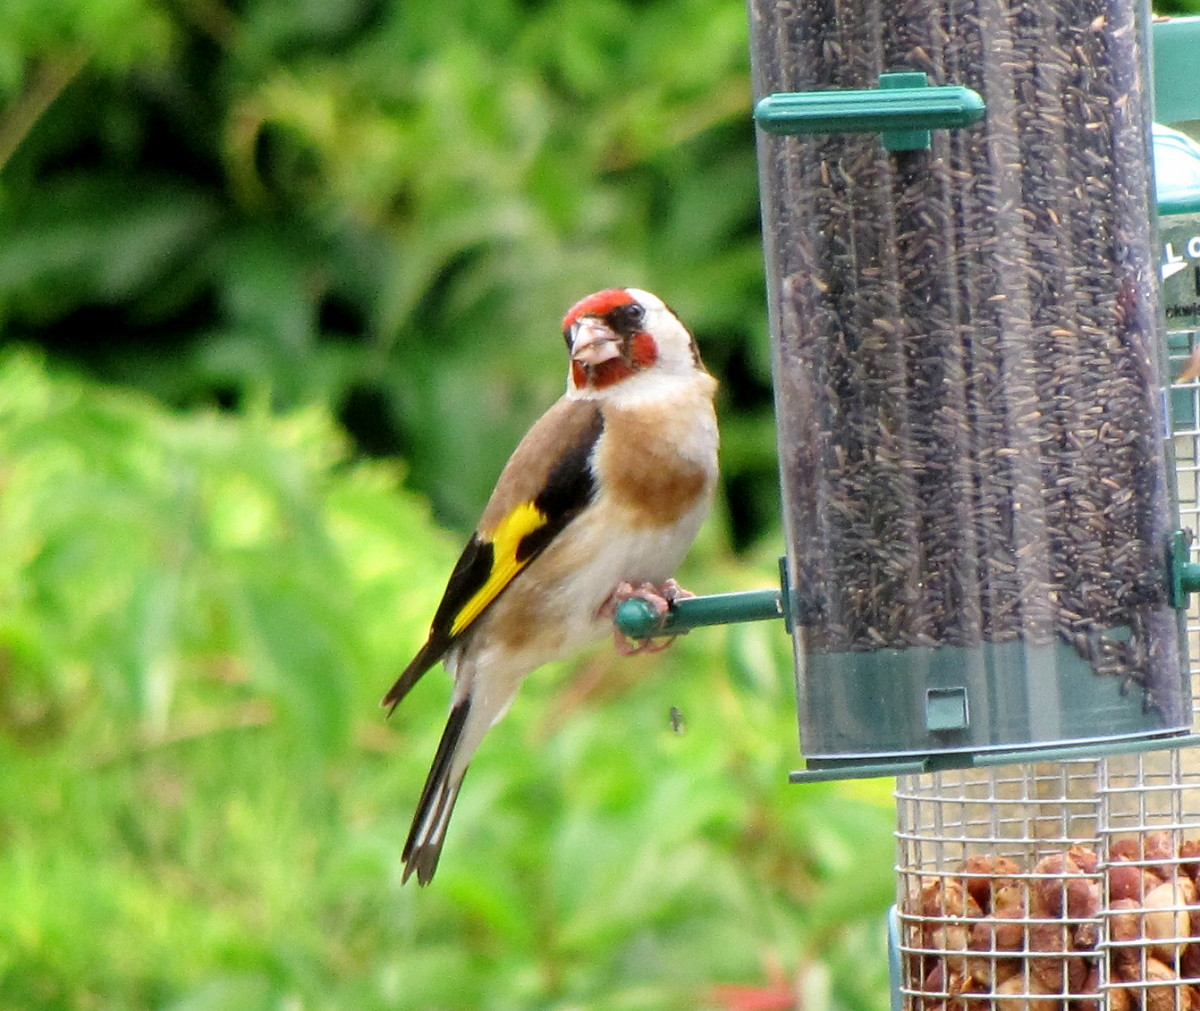 Goldfinch on a garden bird feeder.